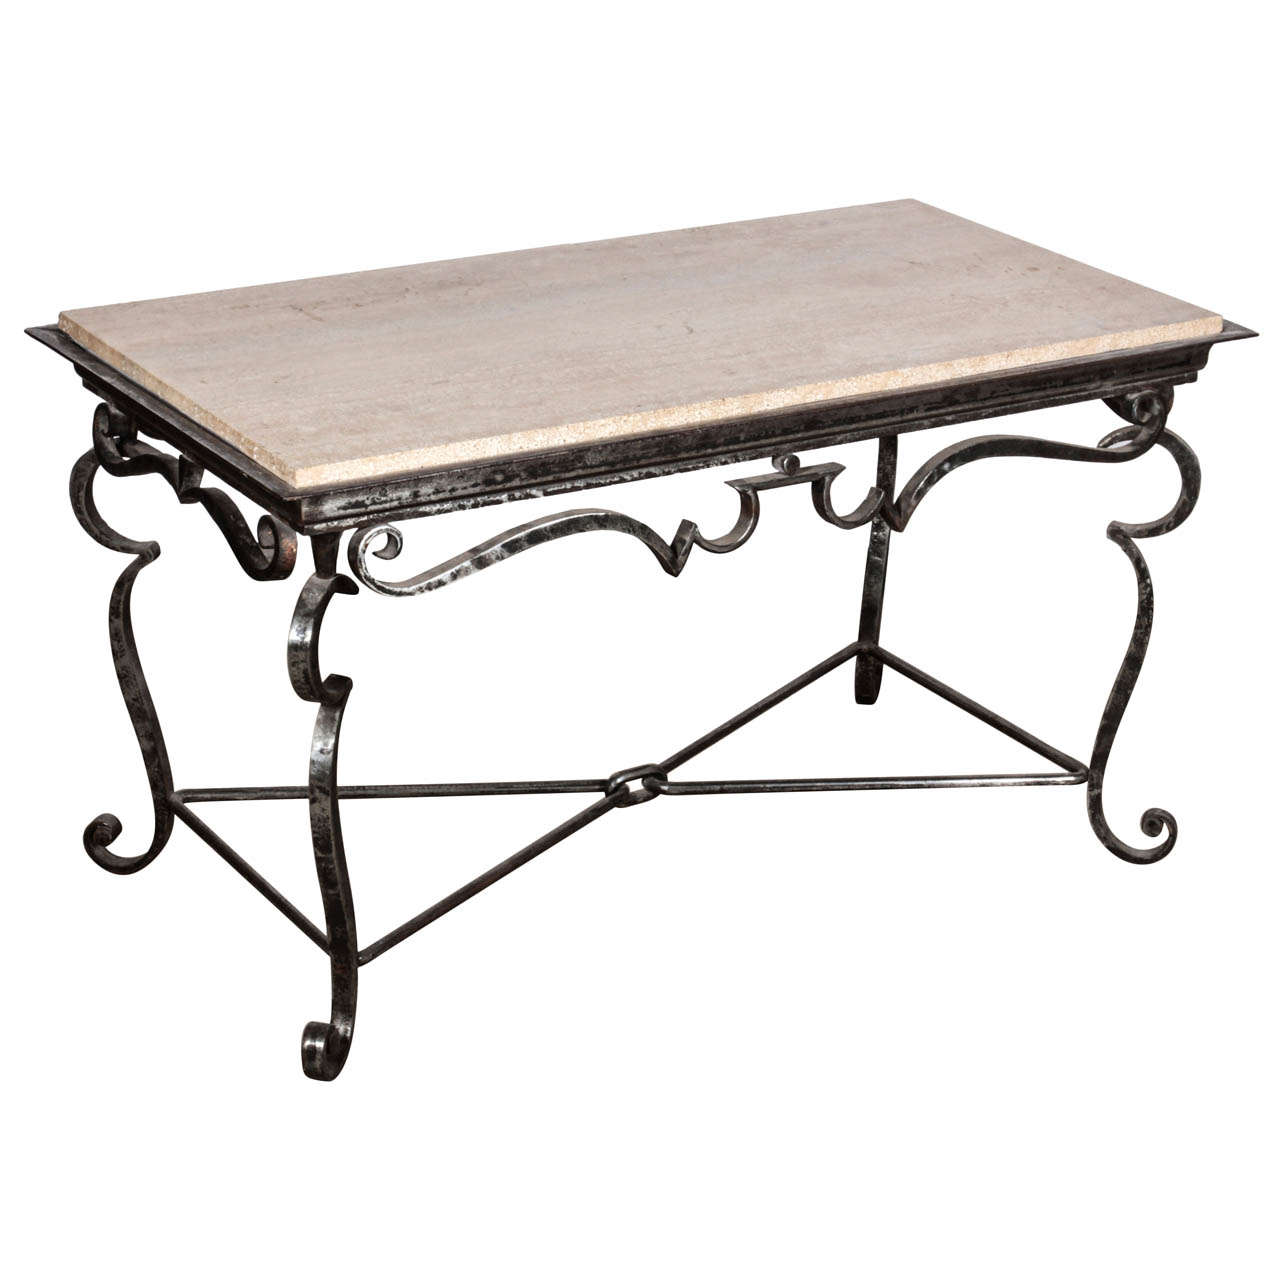 French iron coffee table with travertine marble top for sale